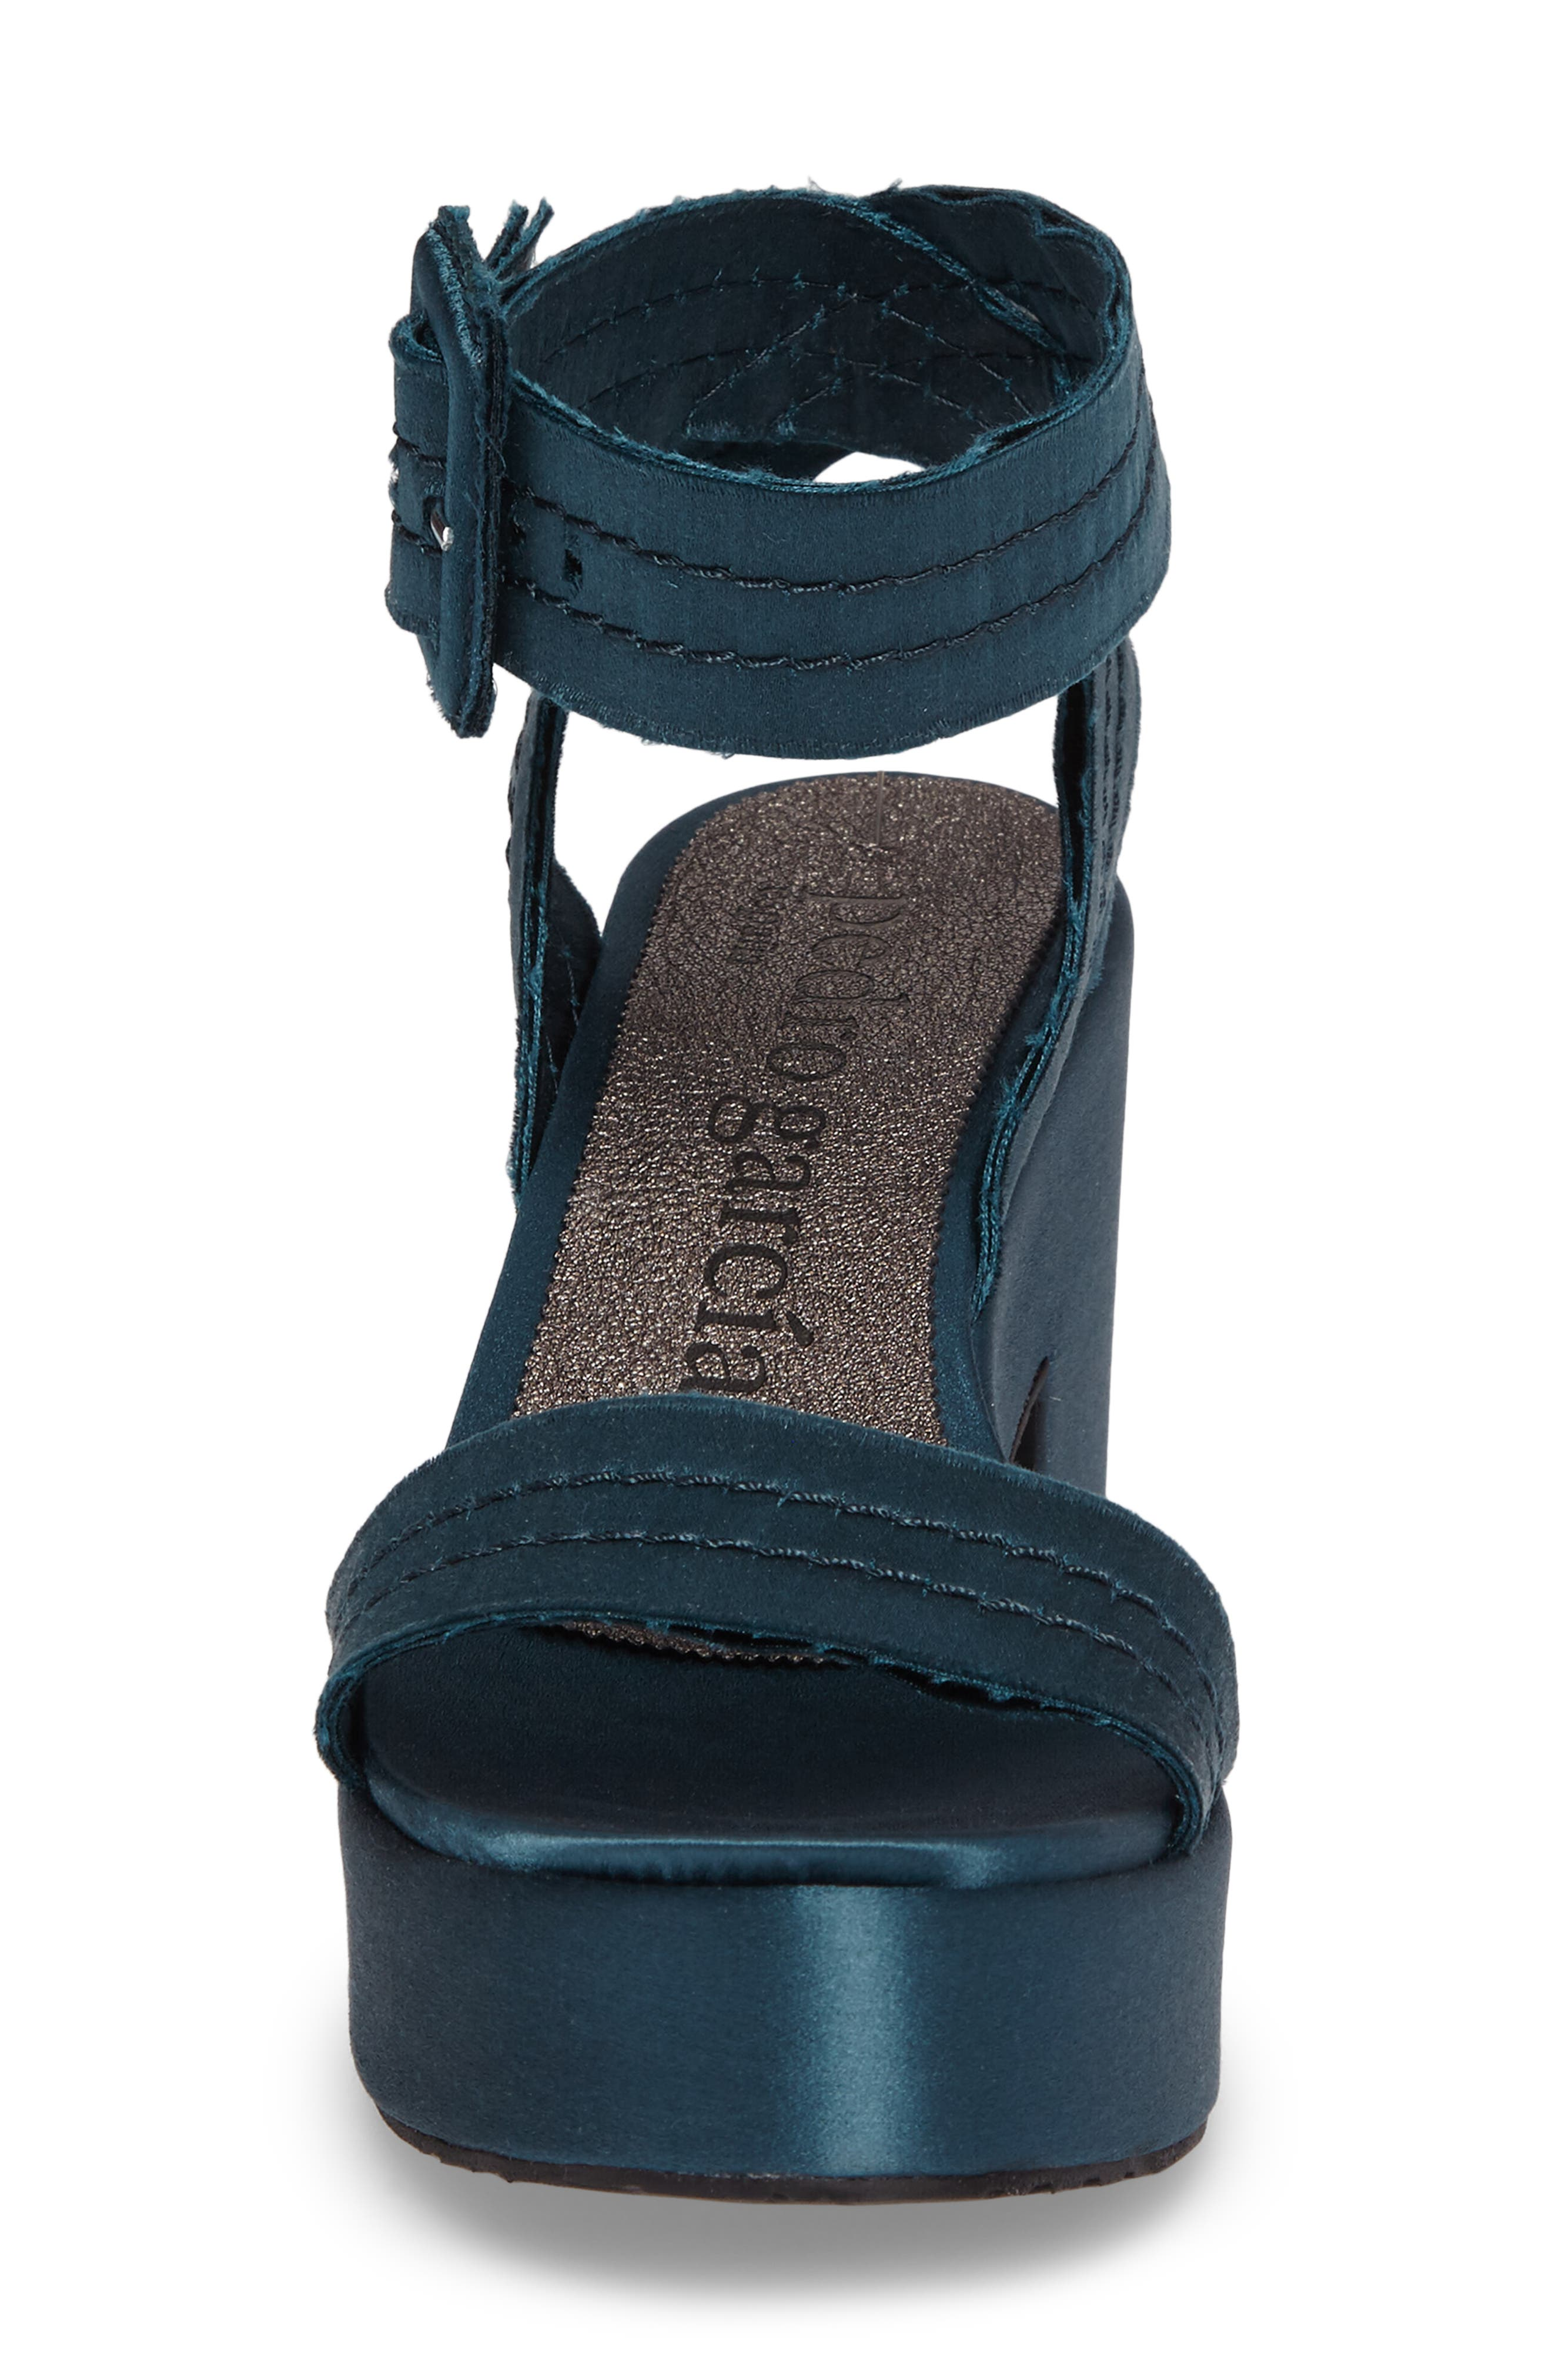 Davida Platform Sandal,                             Alternate thumbnail 4, color,                             400